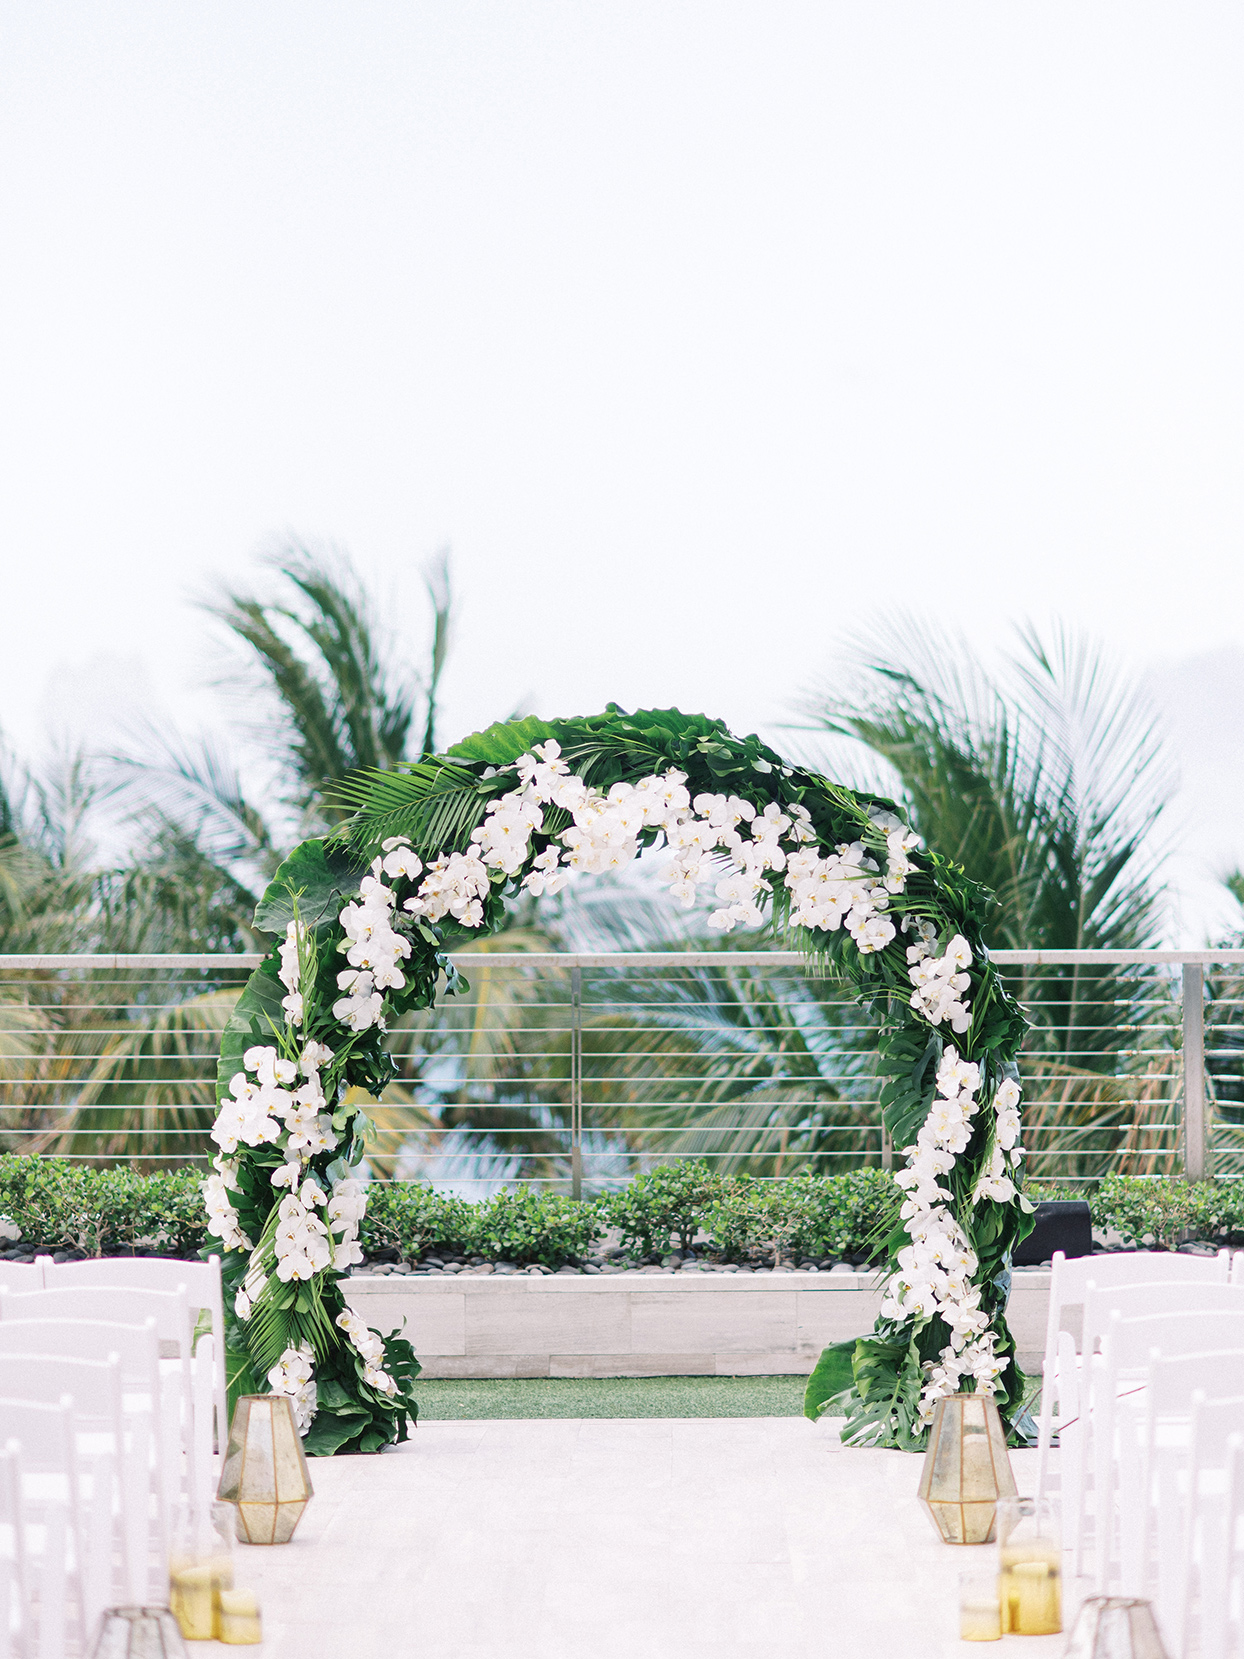 Wedding arch with green foliage and accents of phalaenopsis orchids